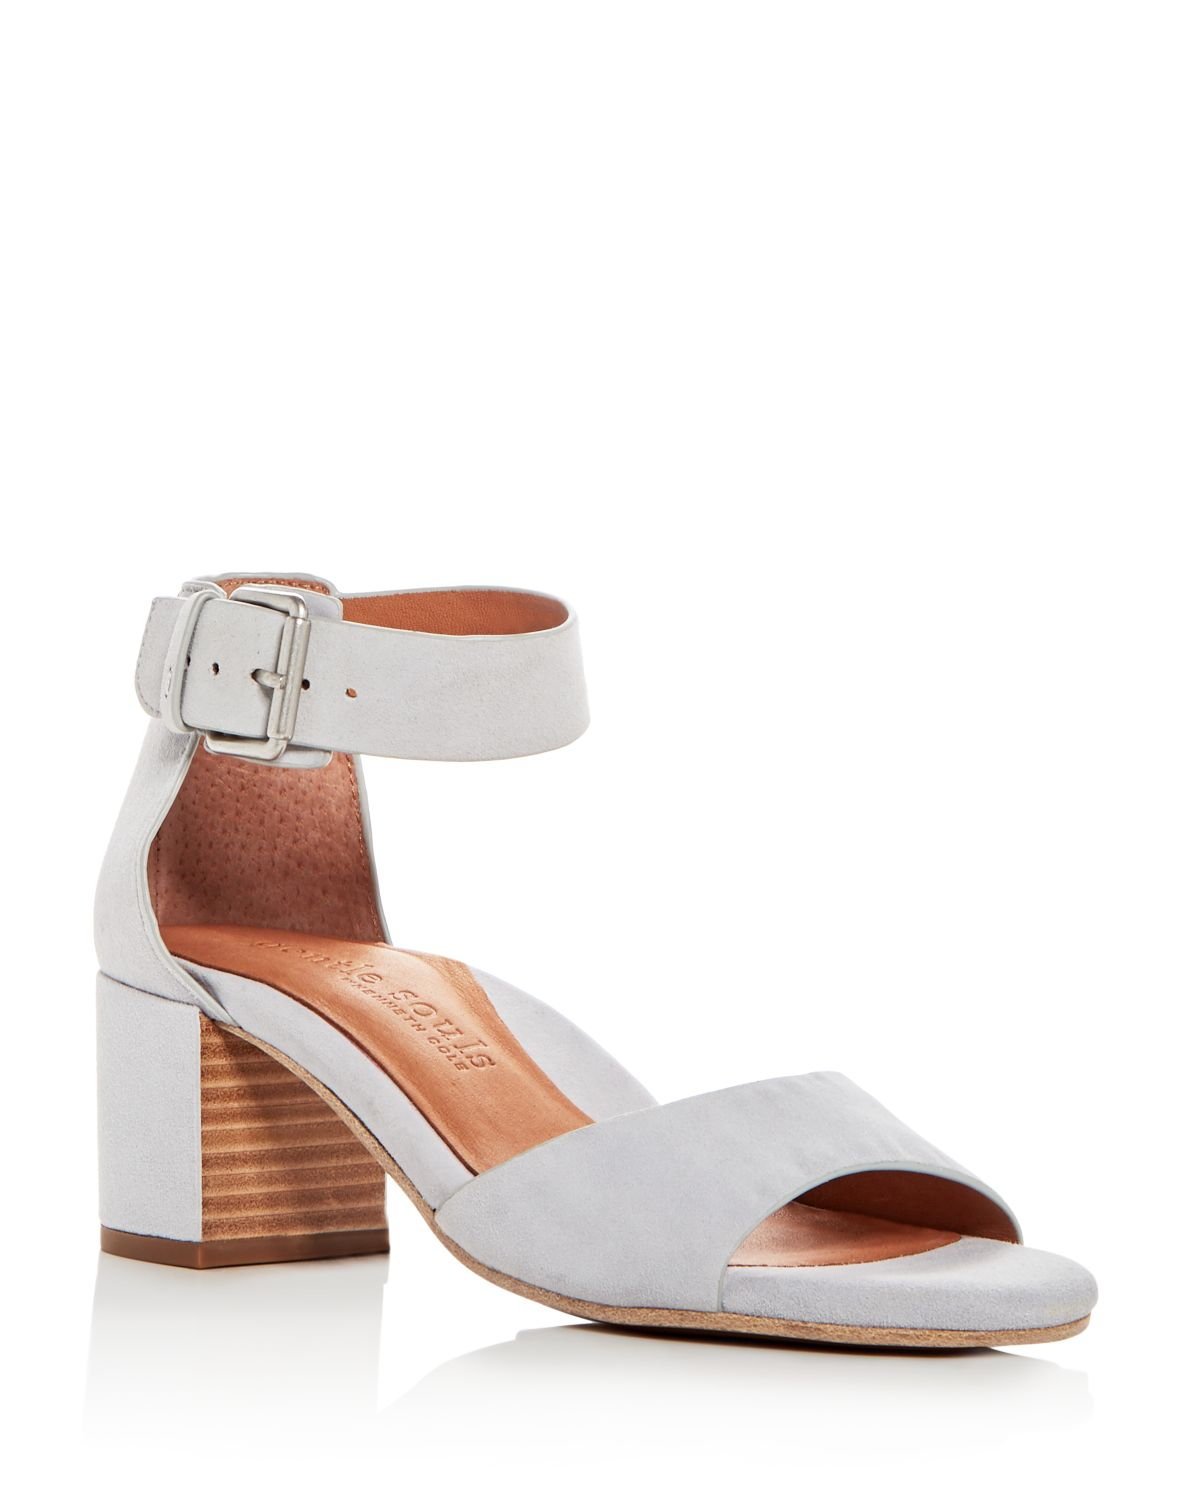 Kenneth Cole Gentle Souls Women's Christa Suede Ankle Strap Block Heel Sandals